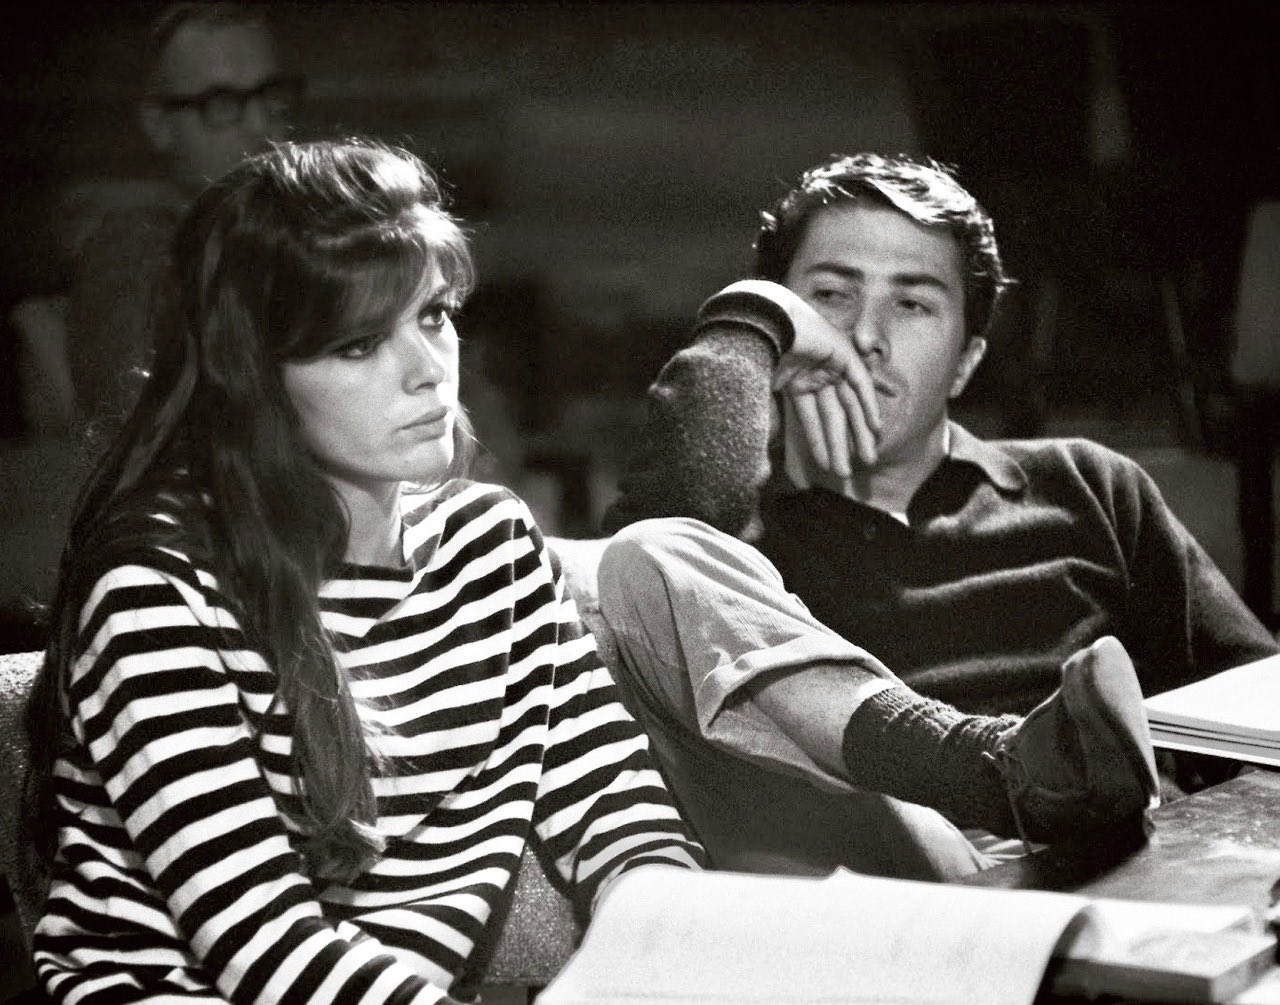 Katharine Ross and Dustin Hoffman in rehearsal for The Graduate, 1967 https://t.co/erfqCWAr9Q